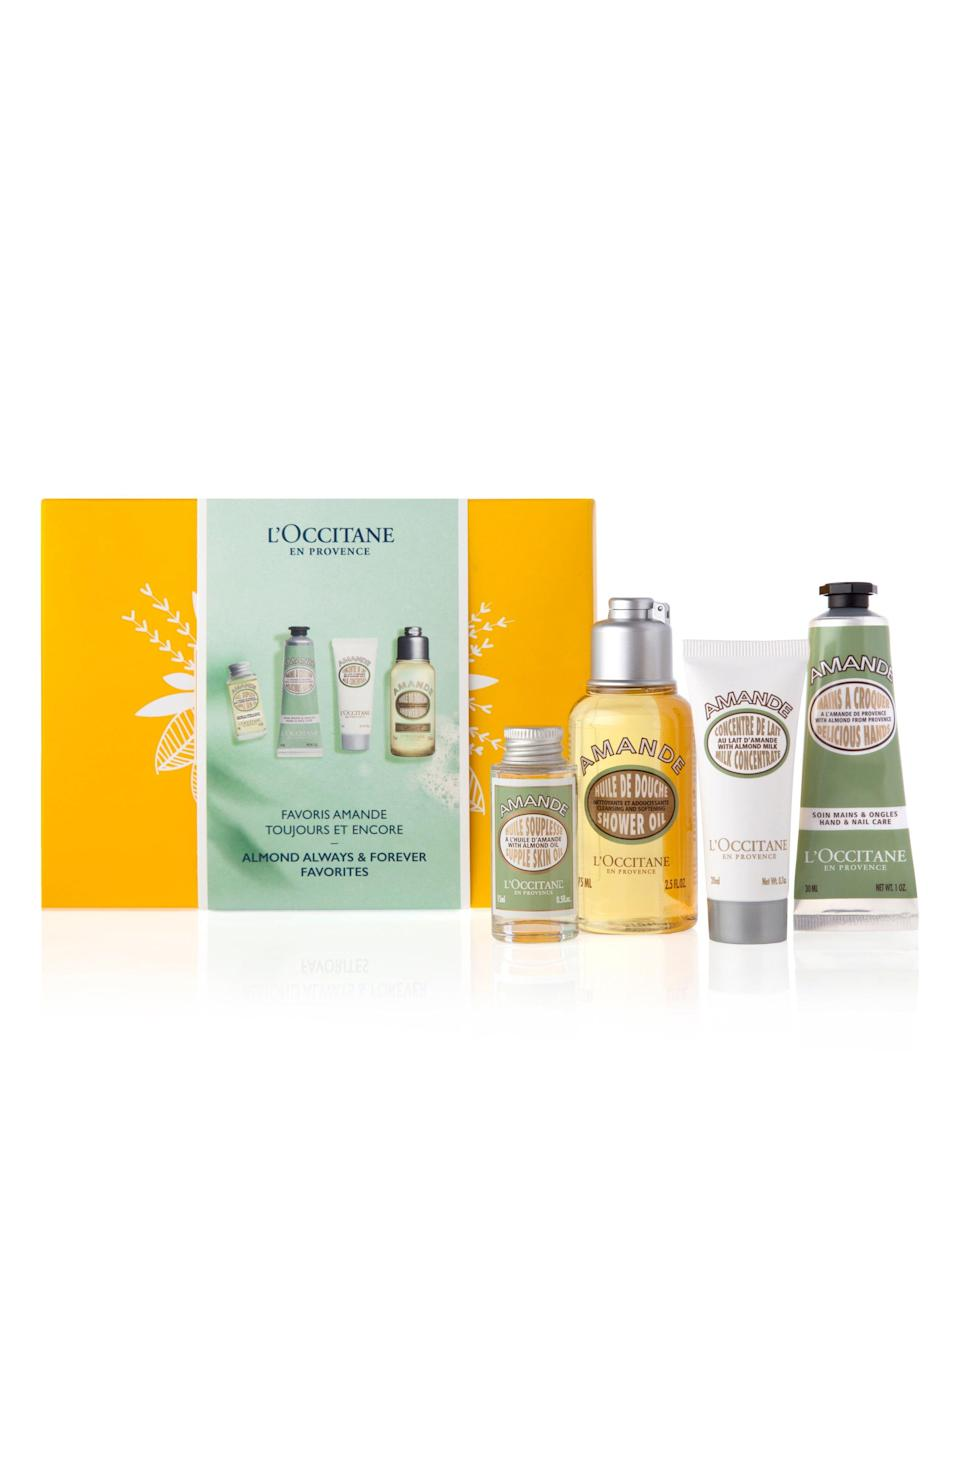 "<p><strong>L'OCCITANE</strong></p><p>nordstrom.com</p><p><strong>$34.00</strong></p><p><a href=""https://go.redirectingat.com?id=74968X1596630&url=https%3A%2F%2Fwww.nordstrom.com%2Fs%2Floccitane-almond-always-forever-favorites-set-usd-36-50-value%2F5558067&sref=https%3A%2F%2Fwww.goodhousekeeping.com%2Fholidays%2Fgift-ideas%2Fg4683%2Fgifts-for-grandma%2F"" rel=""nofollow noopener"" target=""_blank"" data-ylk=""slk:Shop Now"" class=""link rapid-noclick-resp"">Shop Now</a></p><p>As her skin starts to take a hit from the dry winter air, she can lather up with the almond-scented products in this four-piece set. Each moisturizing product targets a specific area — a hand and nail cream for dry cuticles, for example — so she can give her body complete care. </p>"